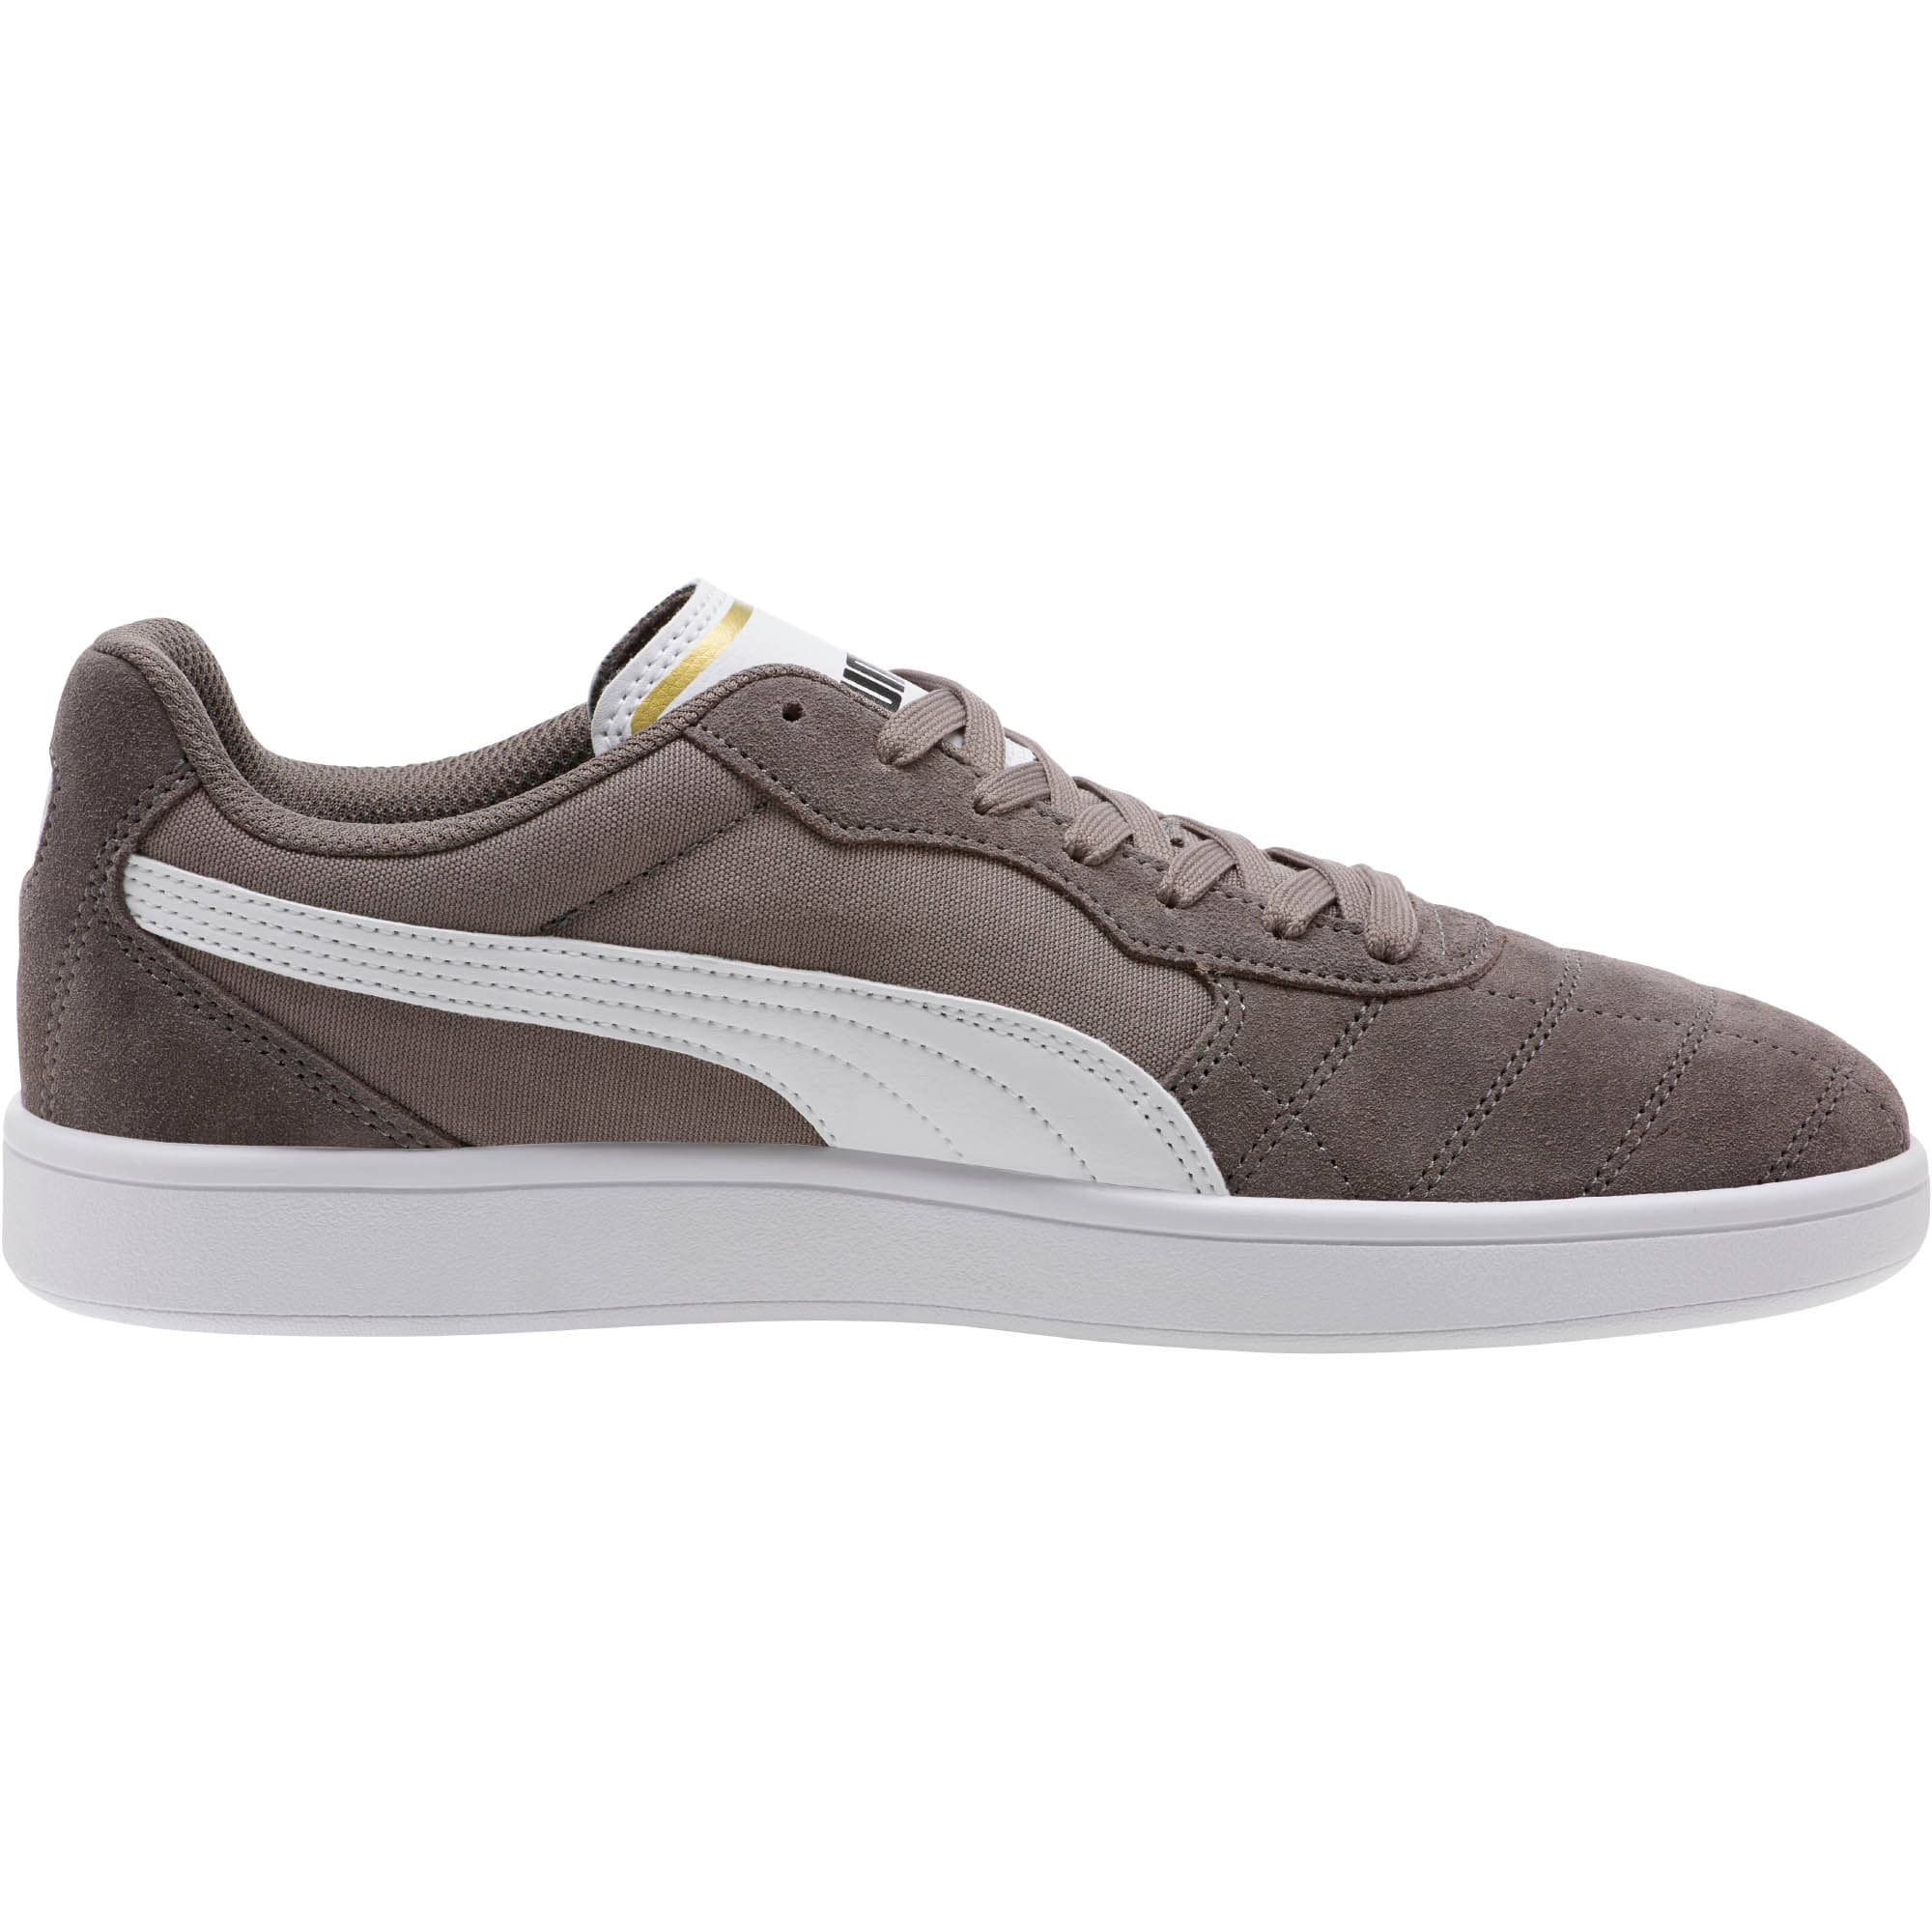 Astro Kick Sneakers, Charcoal Gray-Puma White, large